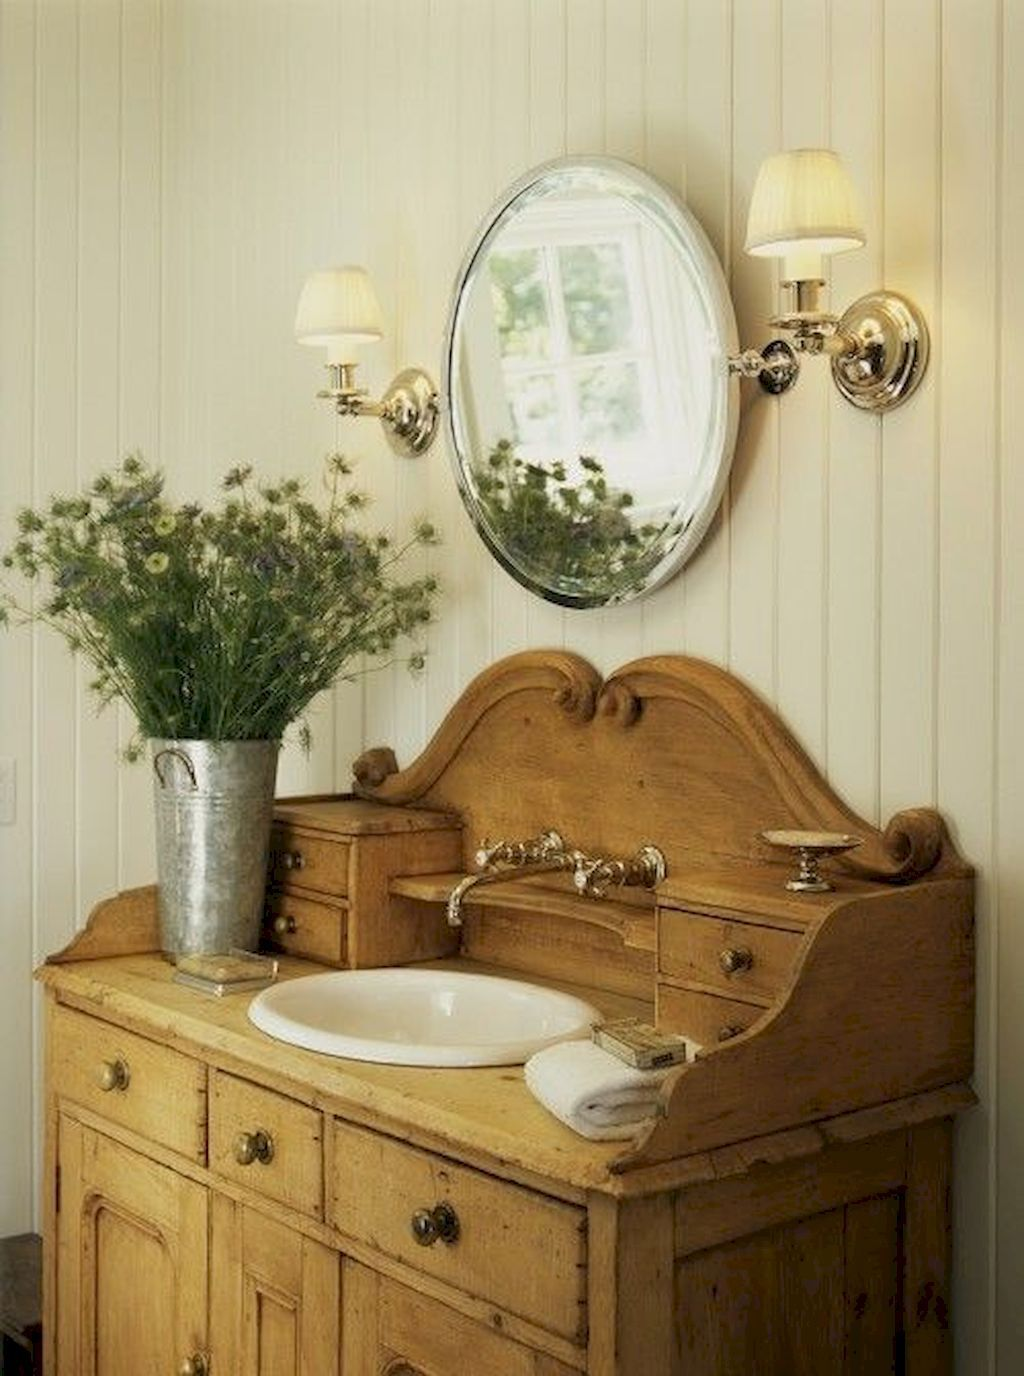 125 Brilliant Farmhouse Bathroom Vanity Remodel Ideas (79